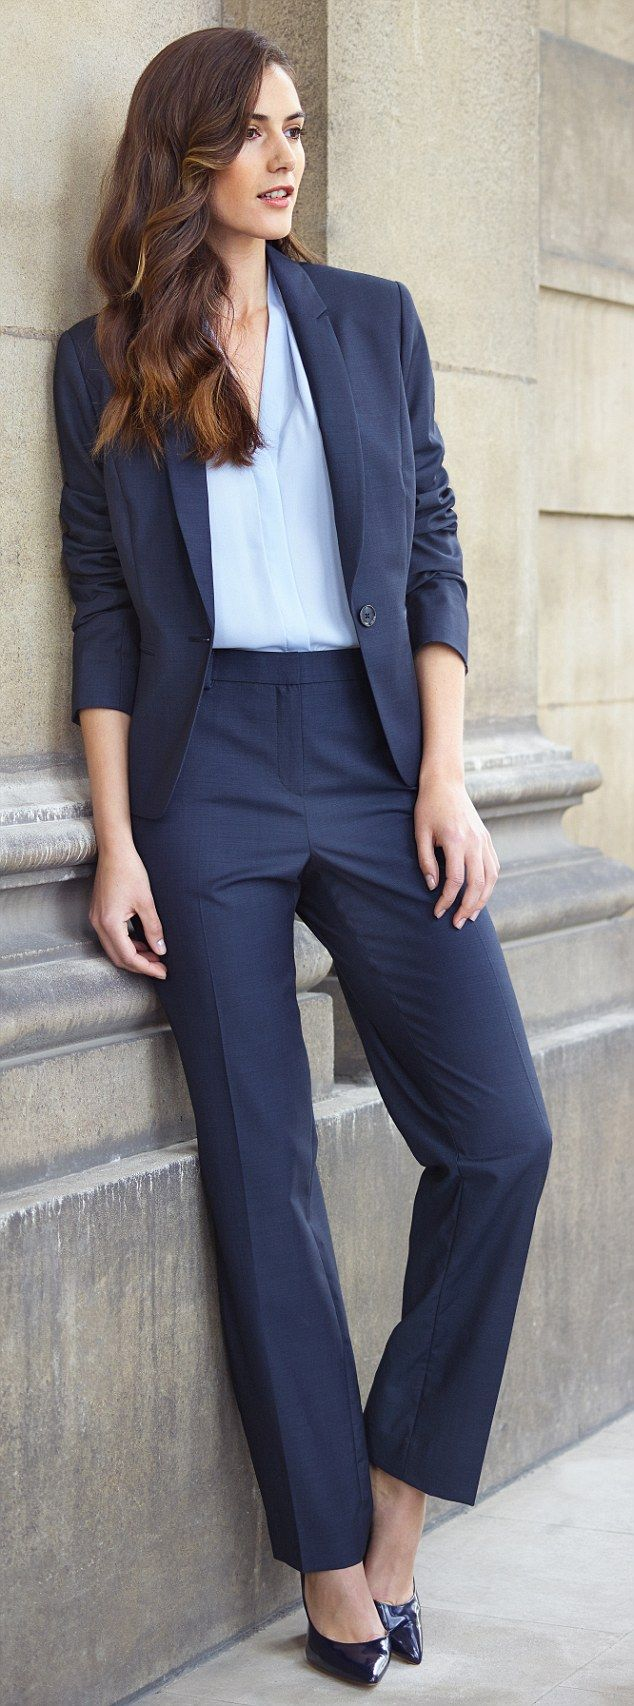 best suit images on pinterest work outfits work wear and